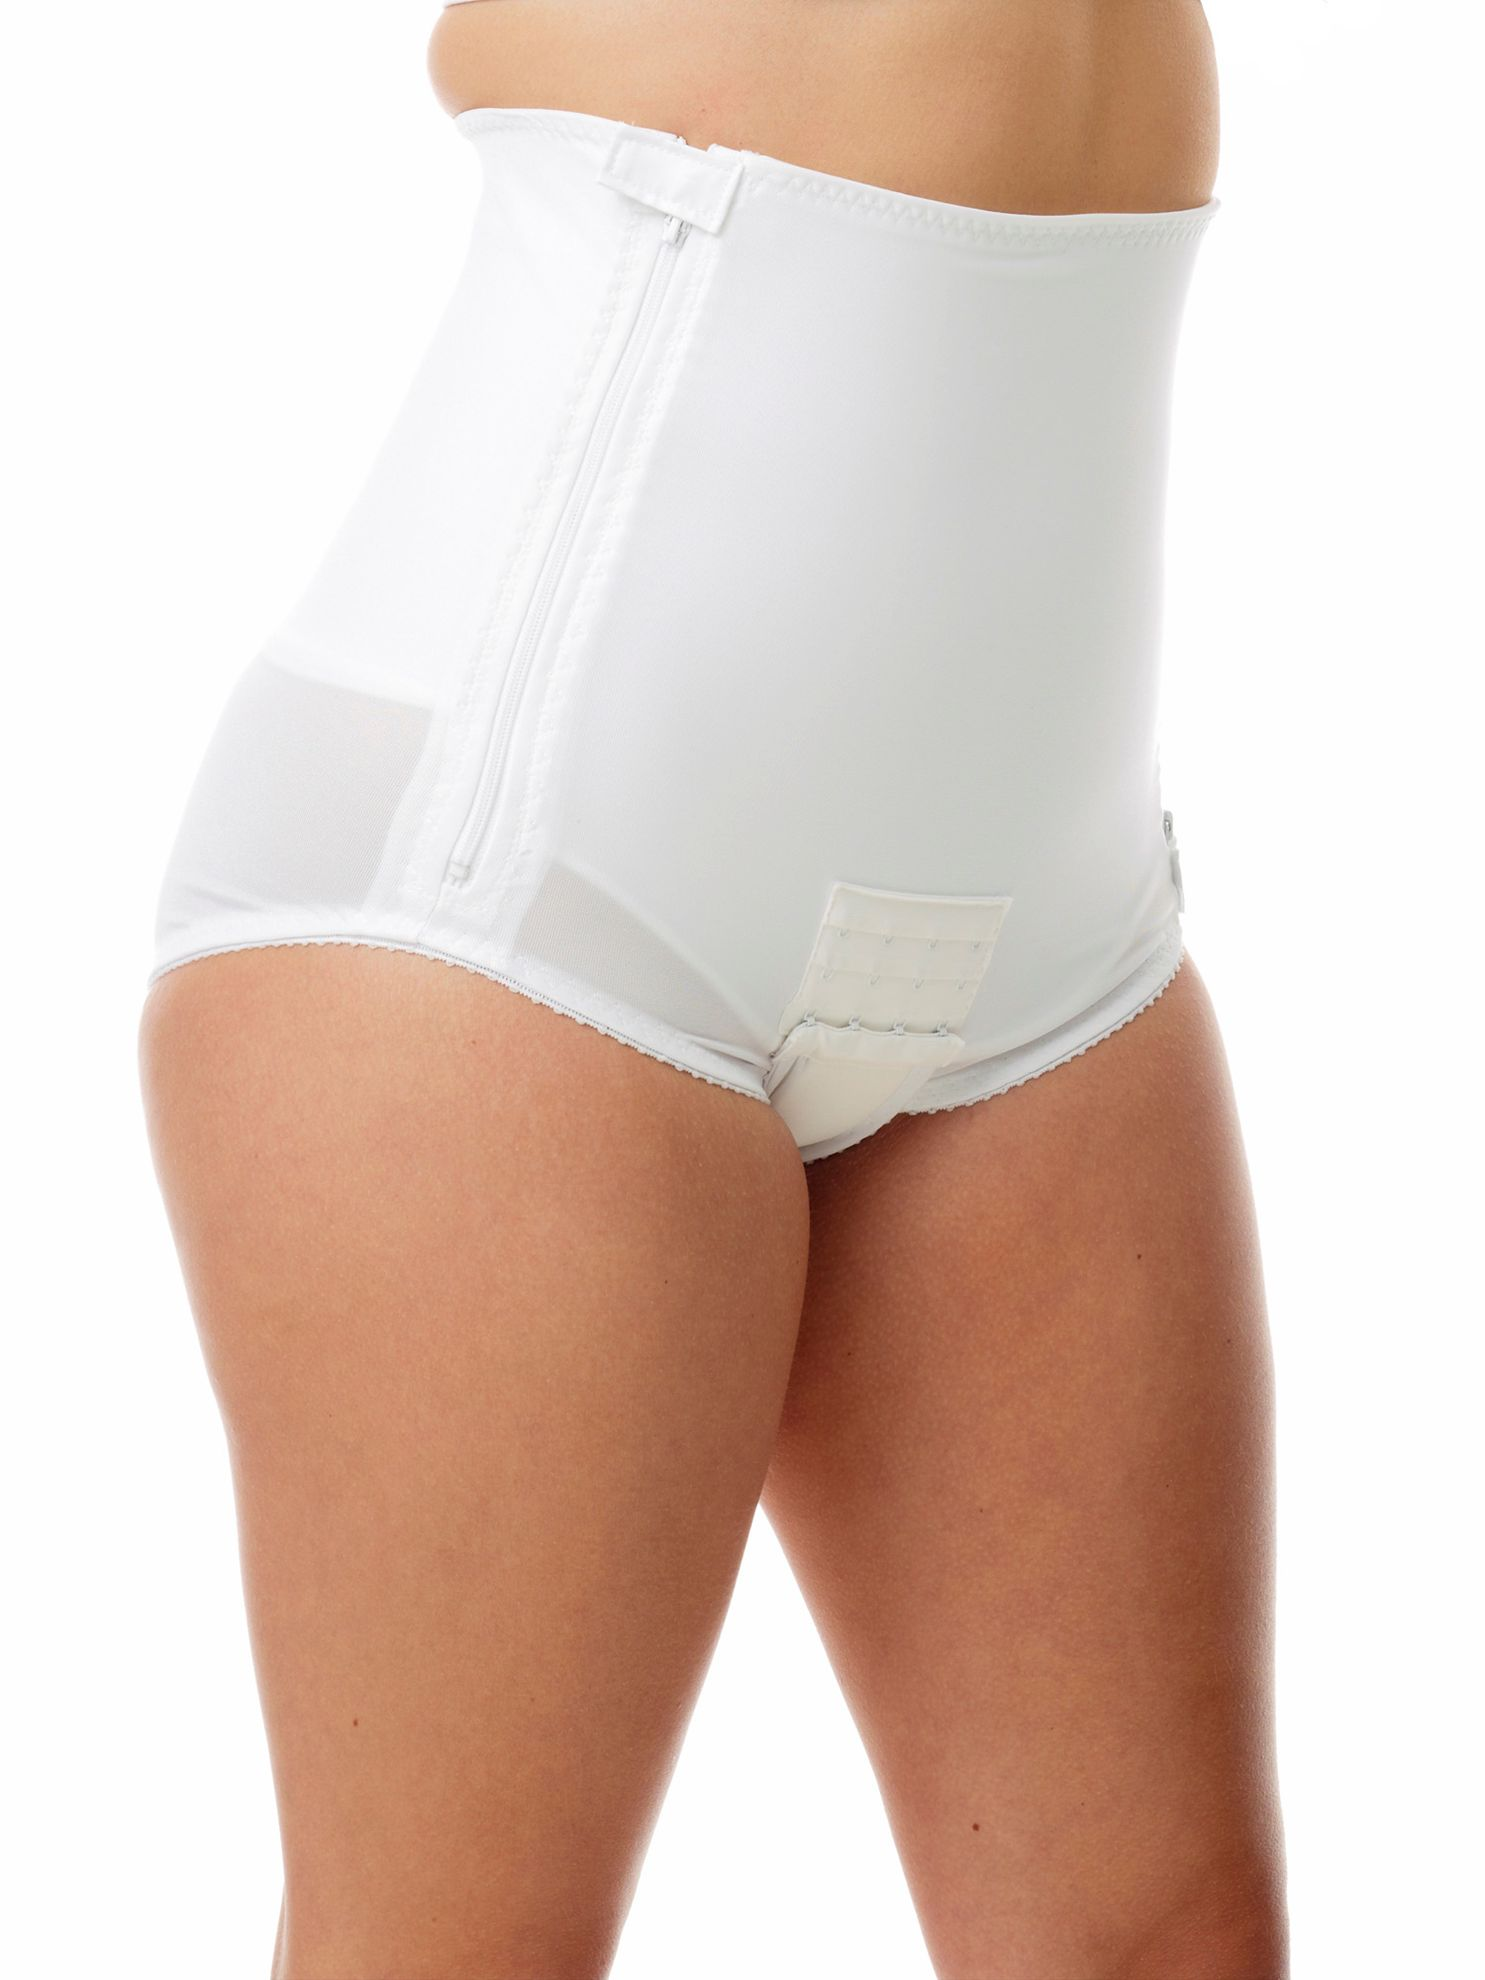 Picture of Post Partum Girdle